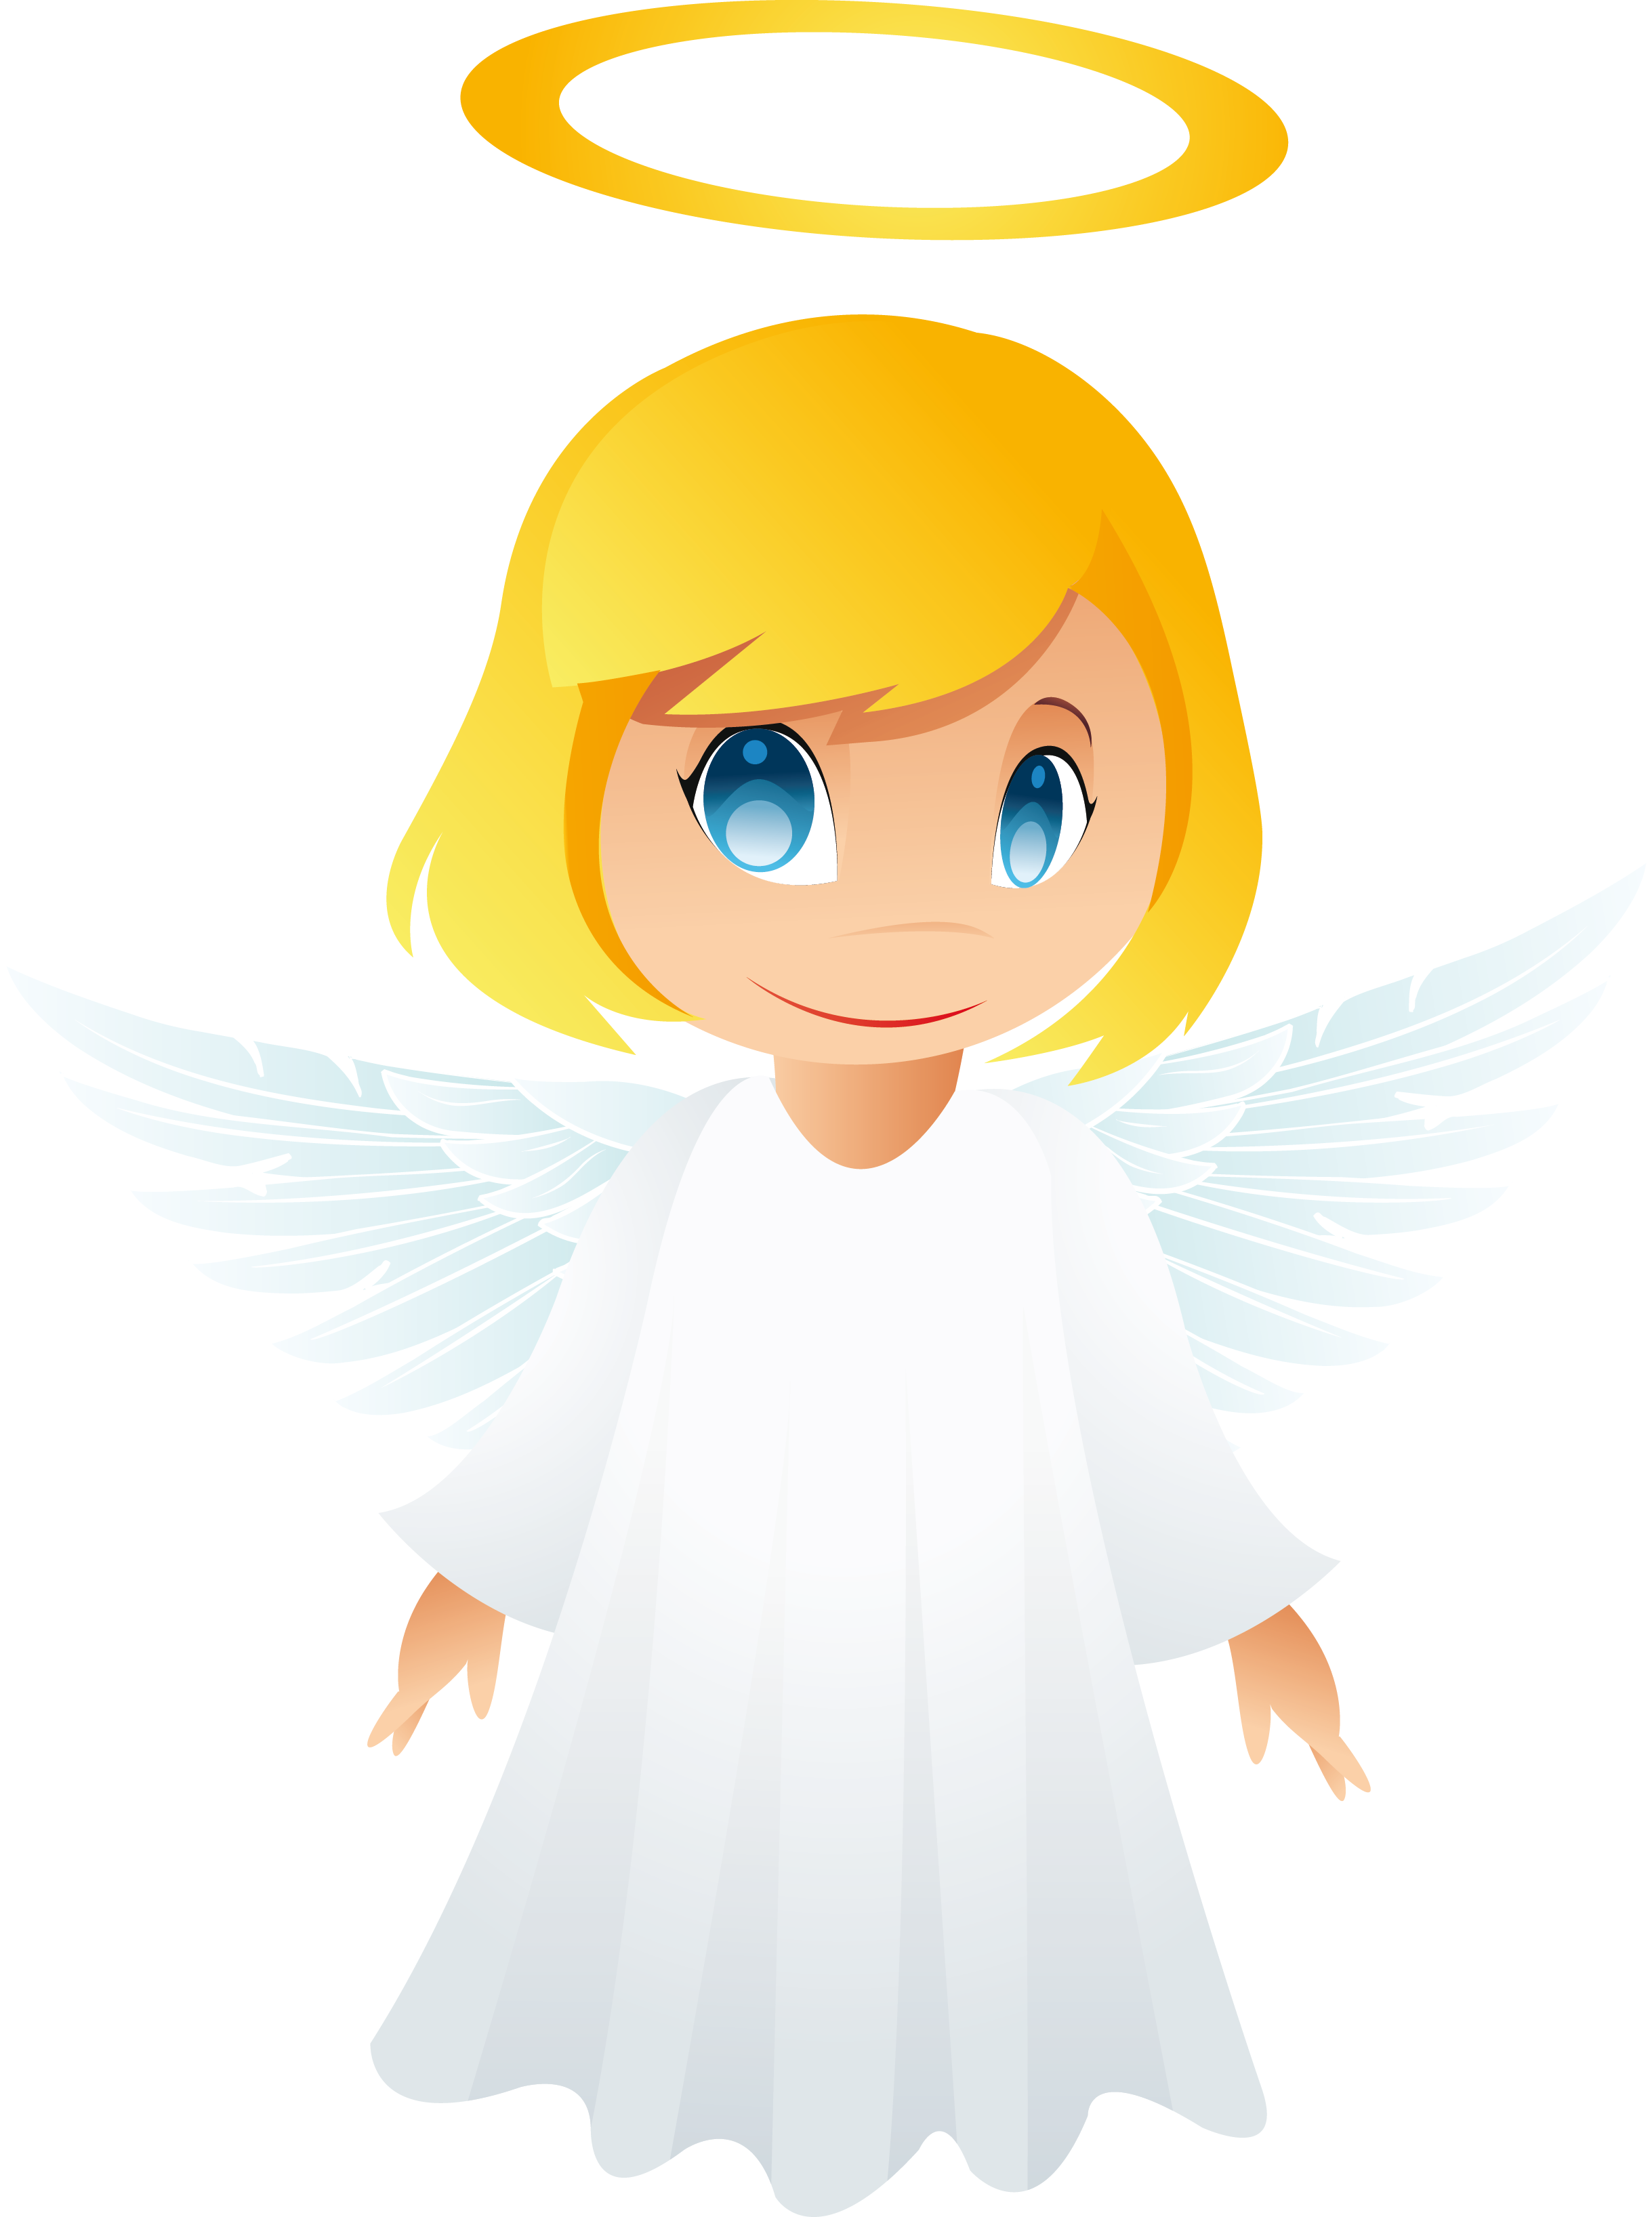 angel clipart free graphics of cherubs and angels the cliparts rh pinterest com angels clip art pictures angel clipart free